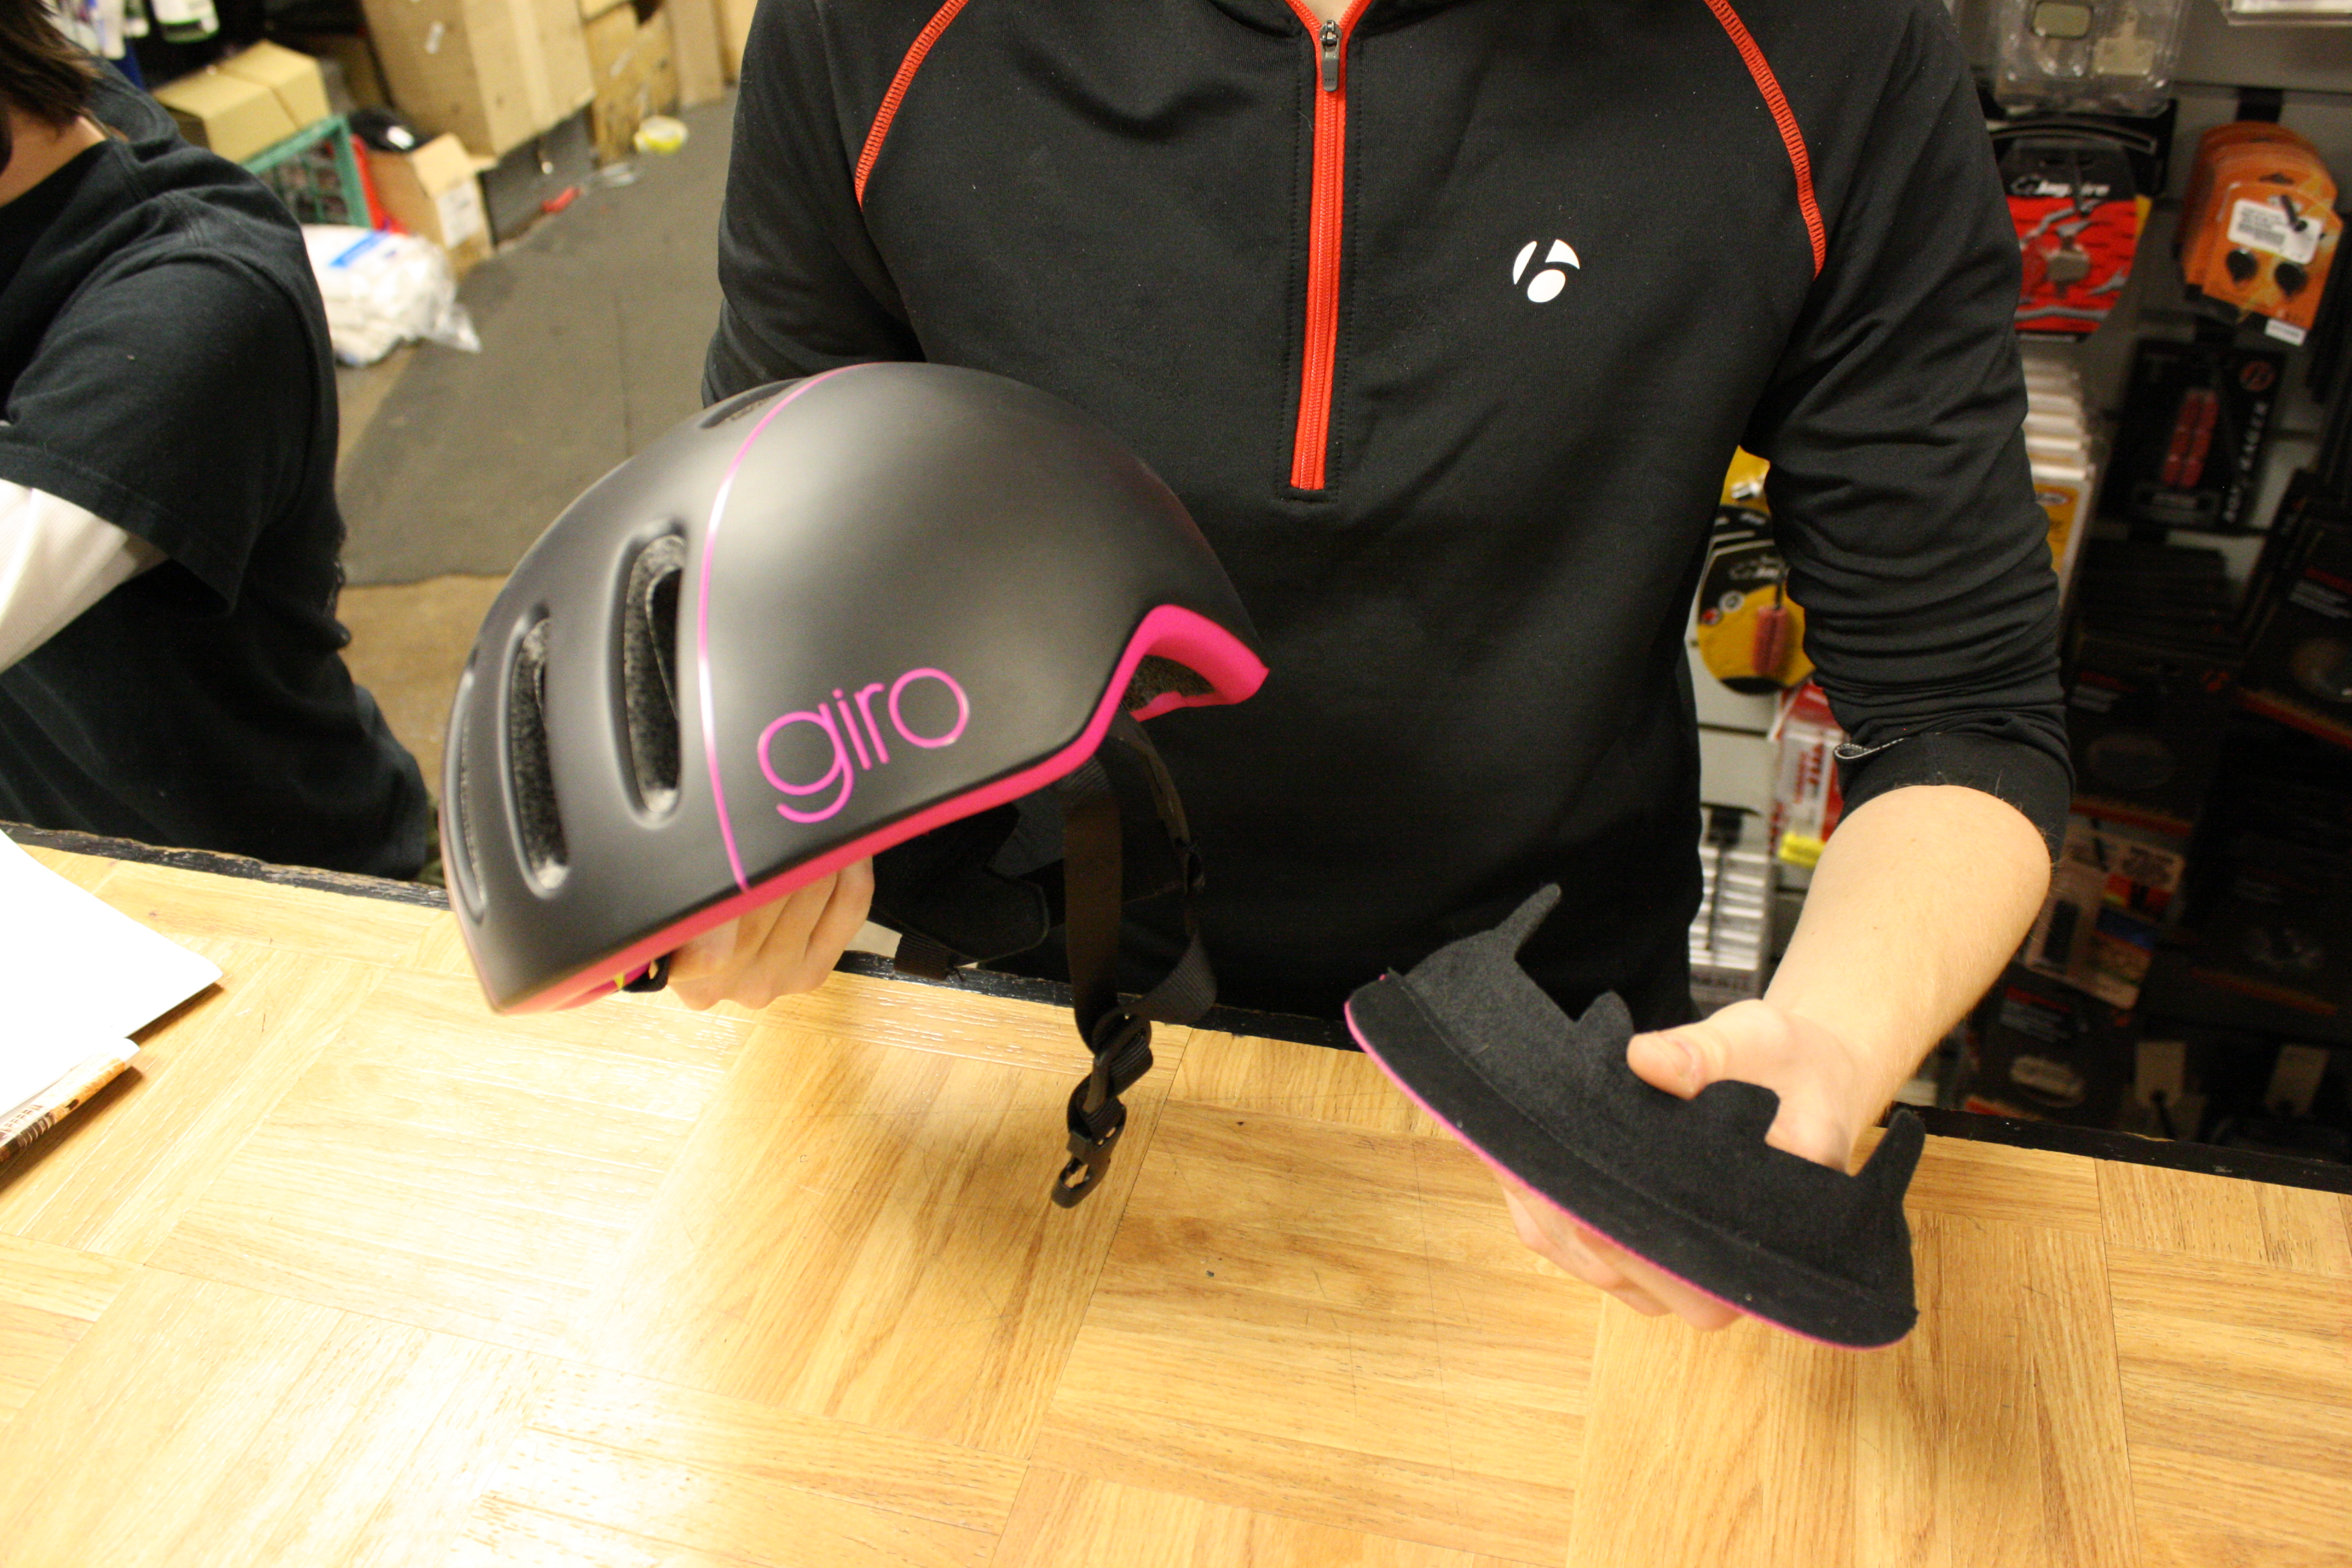 Giro helmets are perfect to keep you safe as well as fashionable on your bike ride